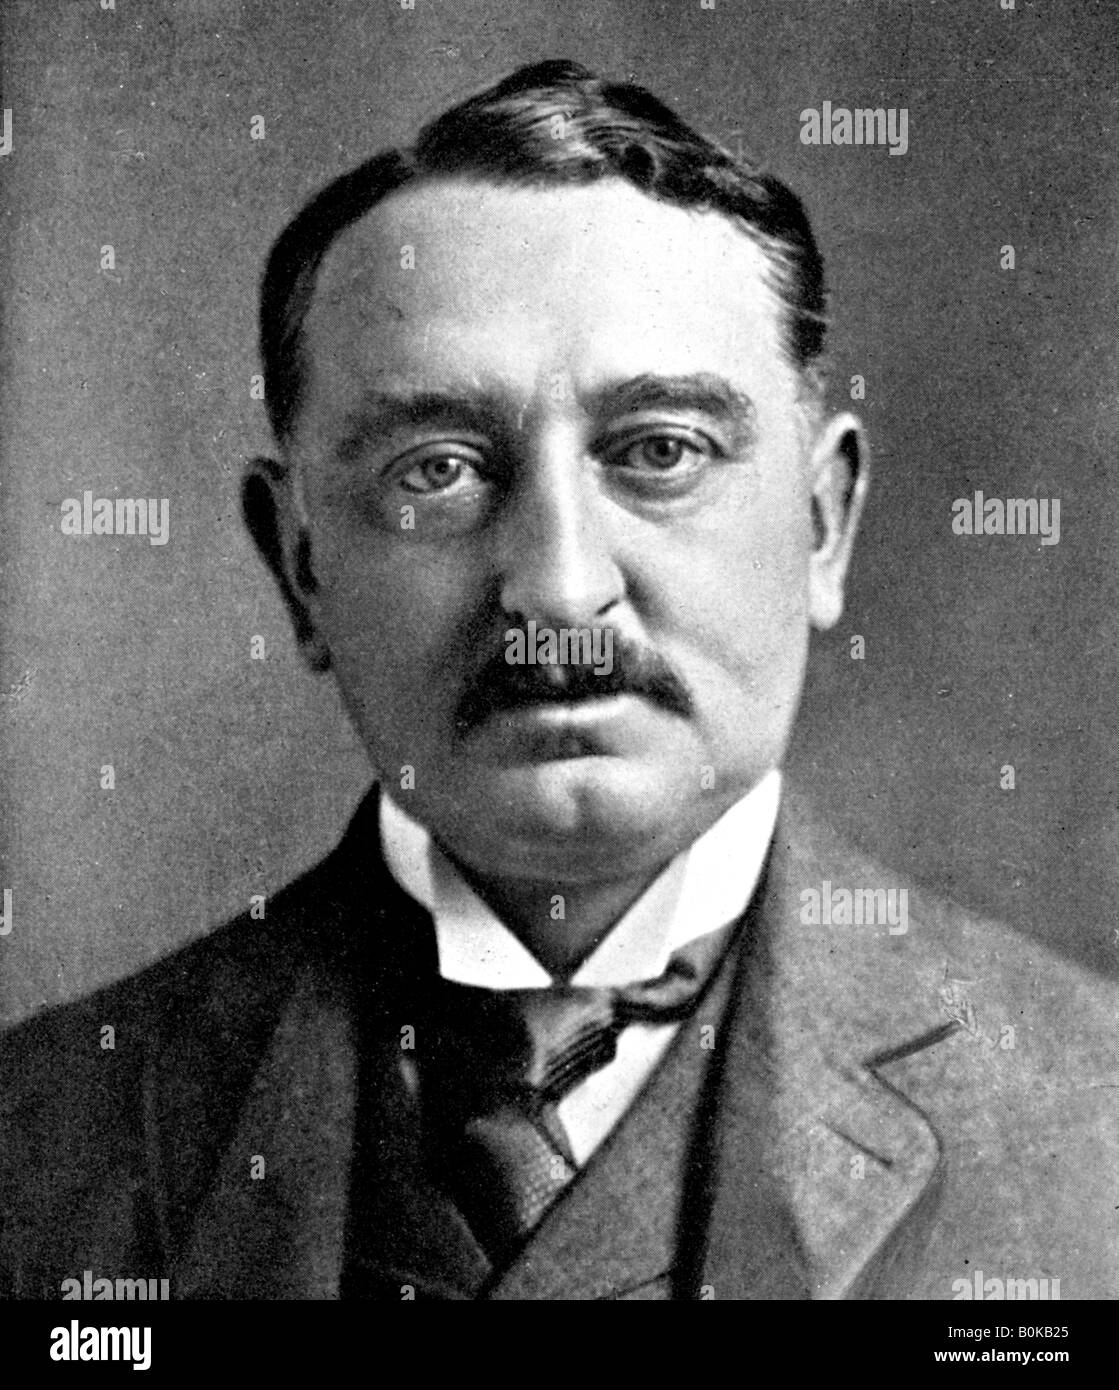 Cecil Rhodes, 19th century English-born South African statesman, c1905. Artist: Unknown - Stock Image